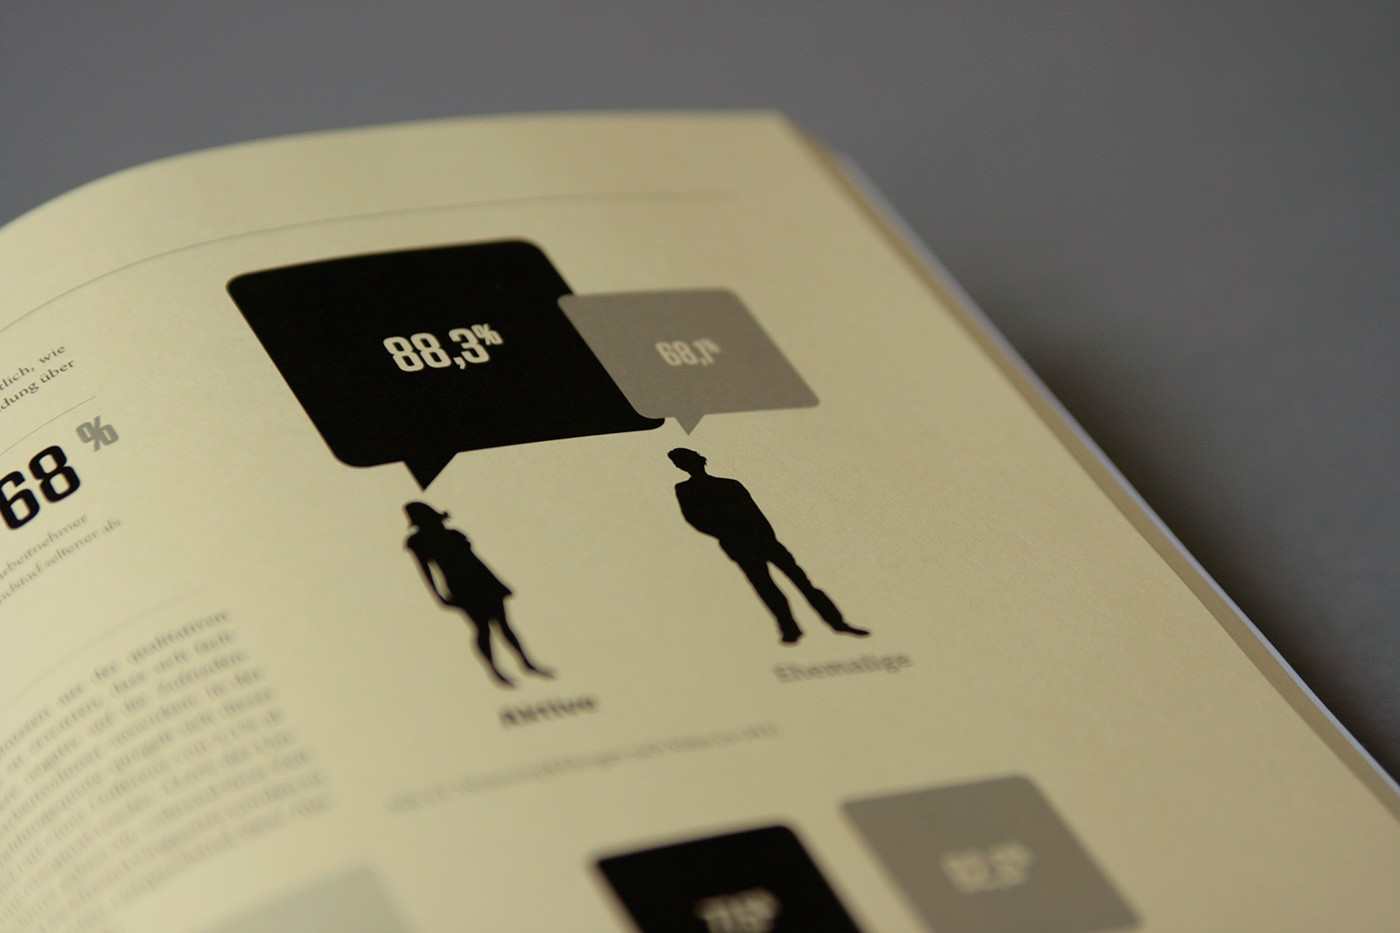 Unstitute / Randstad Book design by upstruct